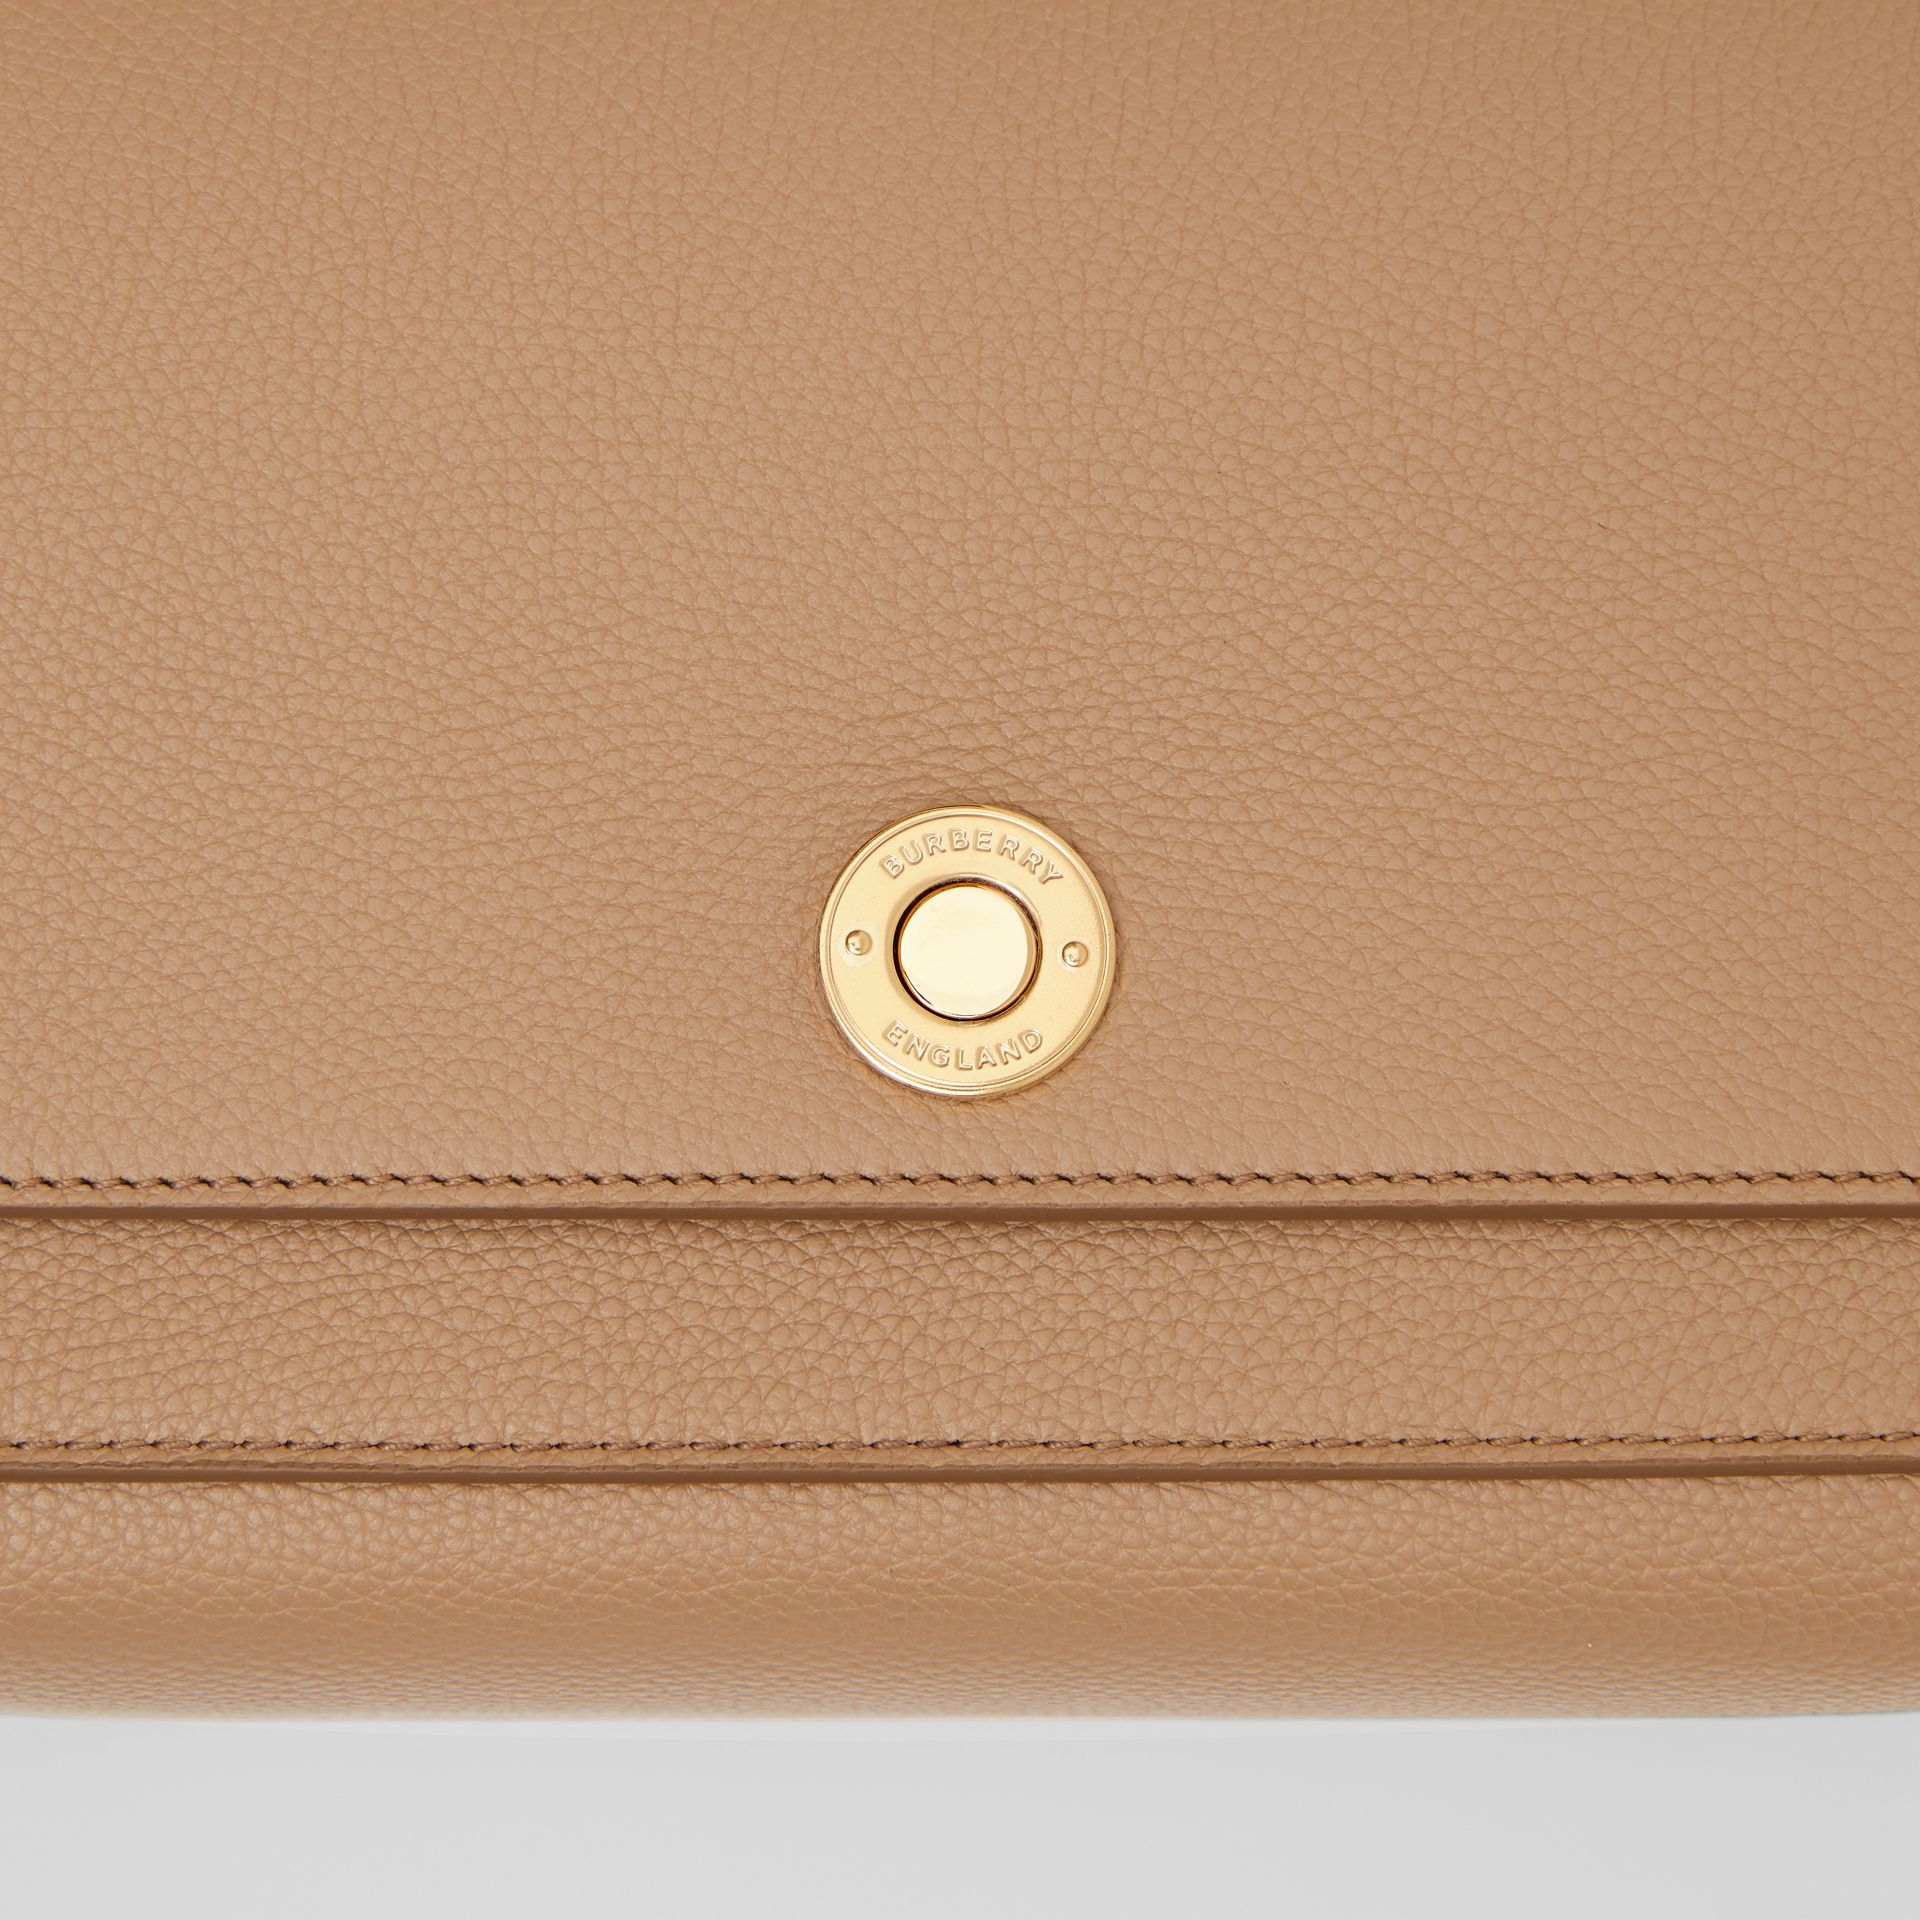 Grainy Leather Note Crossbody Bag in Camel - Women | Burberry Australia - gallery image 1